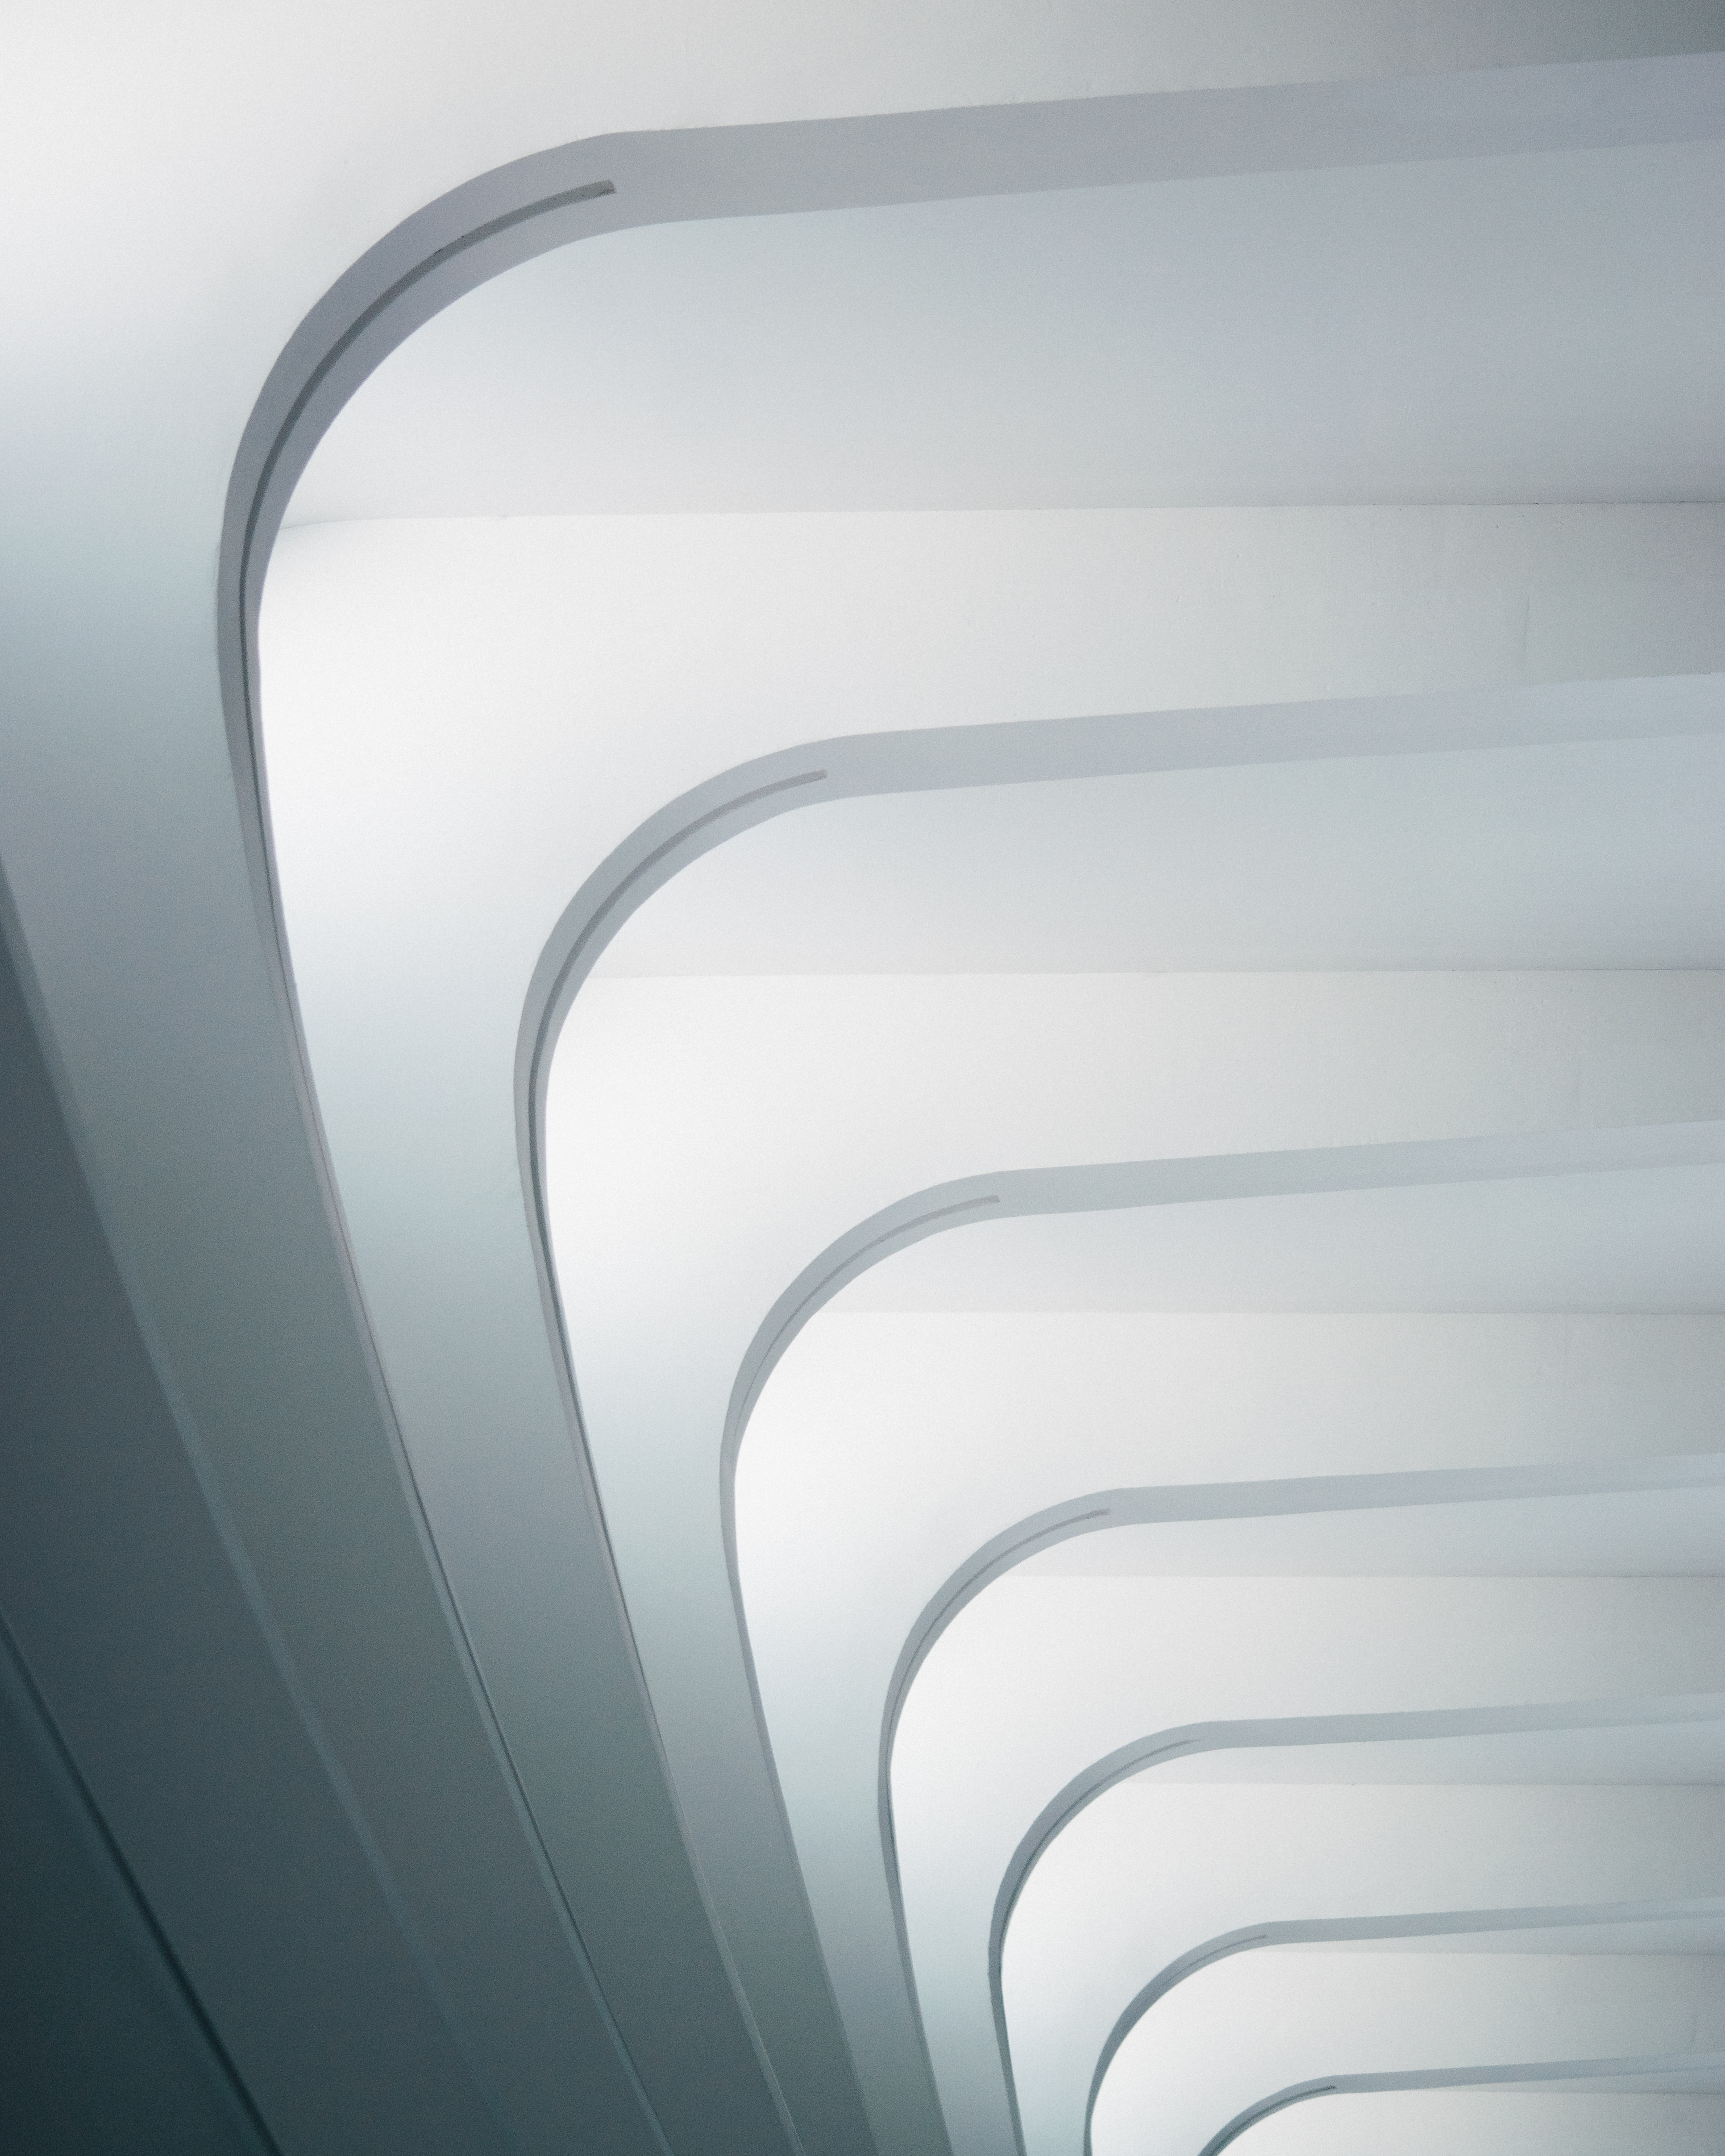 Round corners in the white ribs of the ceiling of Milwaukee Art Museum